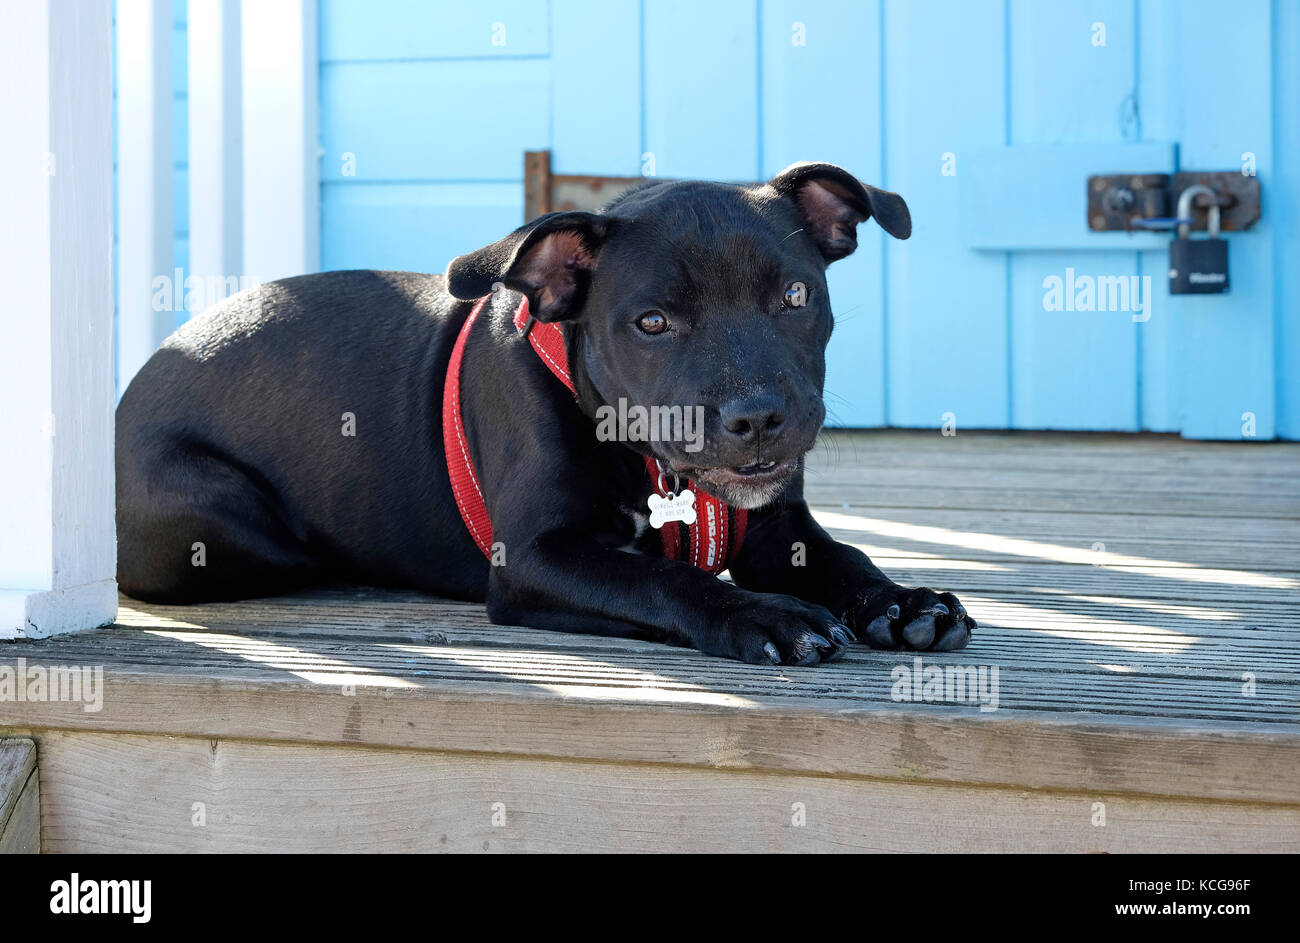 staffordshire bull terrier puppy dog laying on beach hut decking - Stock Image